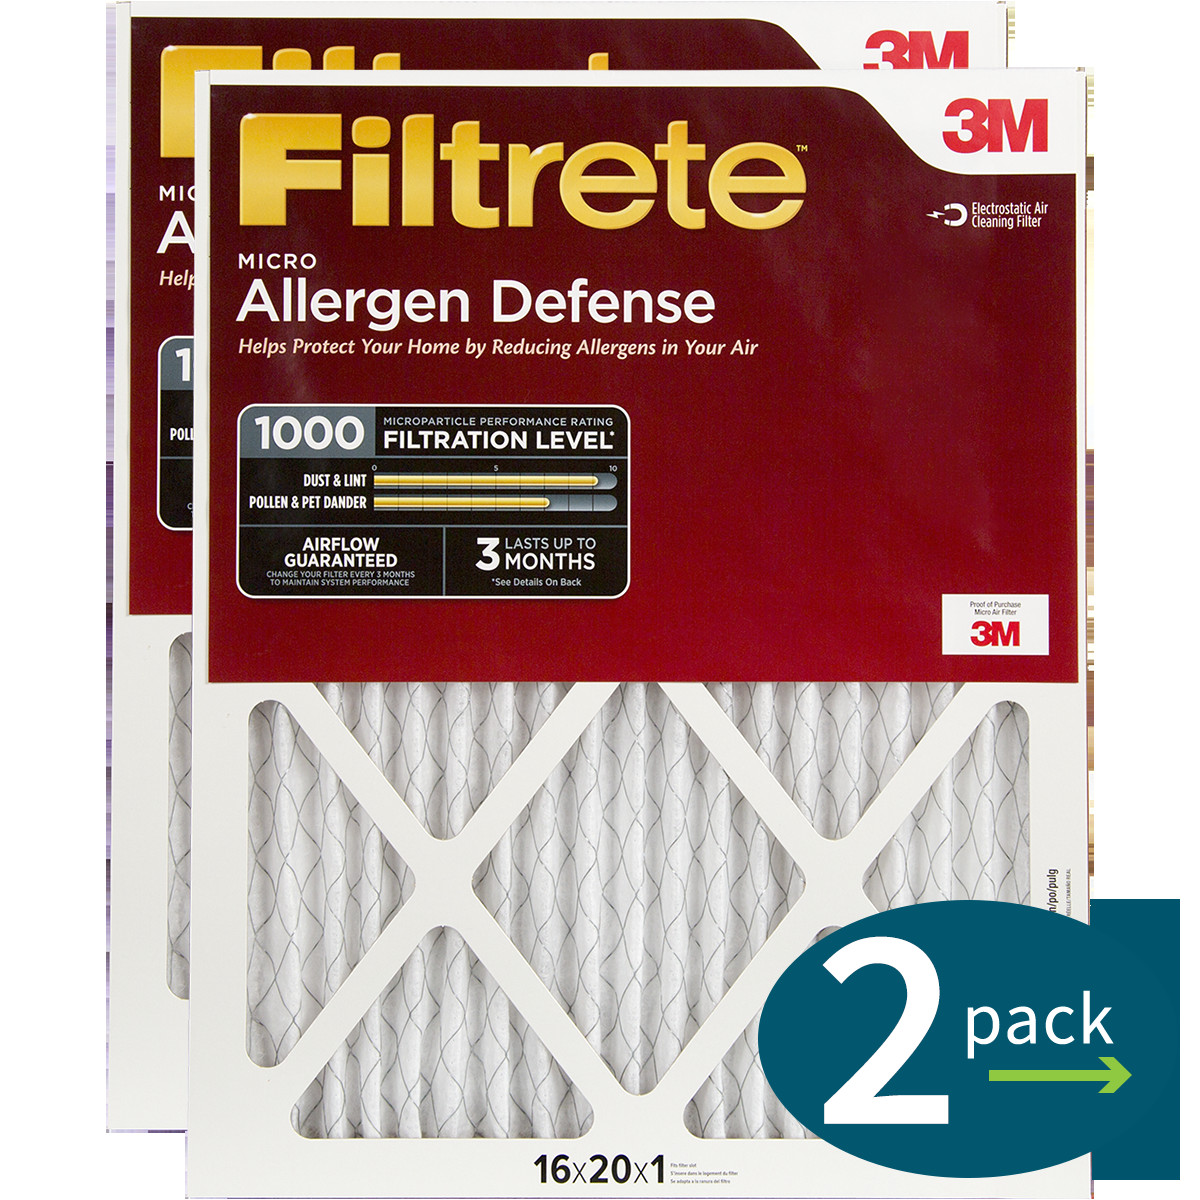 3m filtrete 1000 micro allergen defense filters 16x20x1 2 pack png